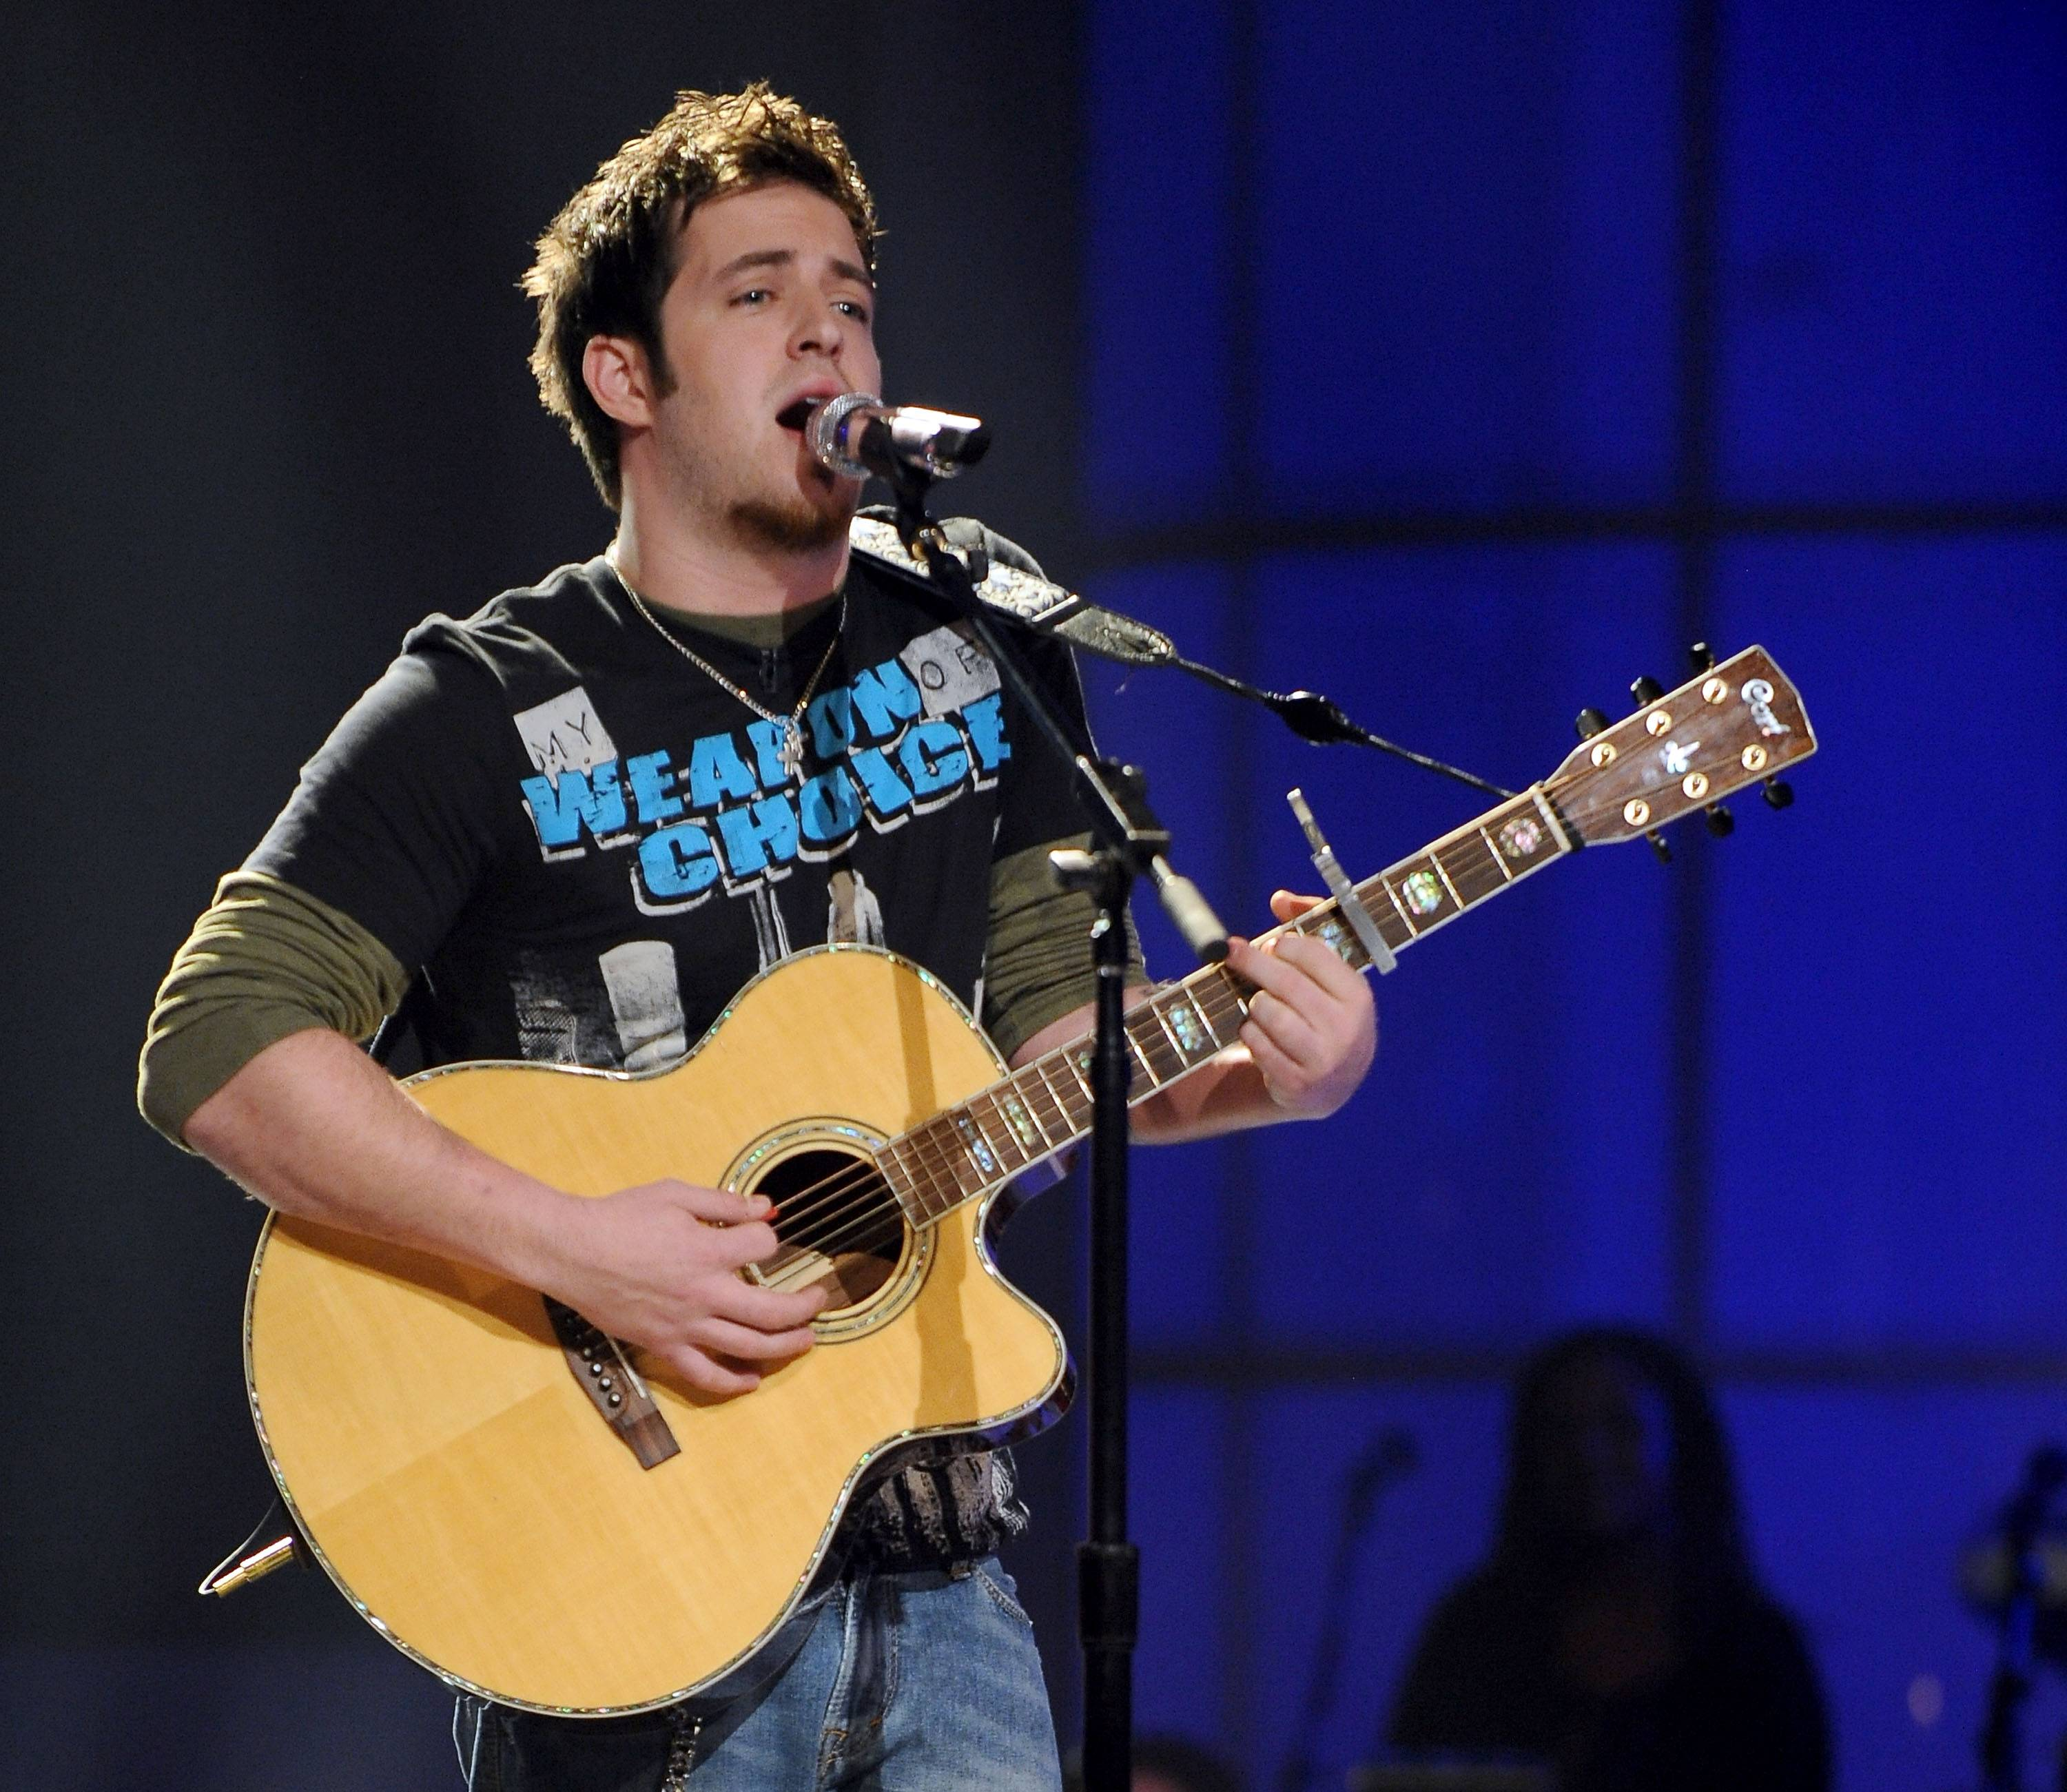 Mount Prospect native Lee DeWyze will perform in Evanston this weekend.